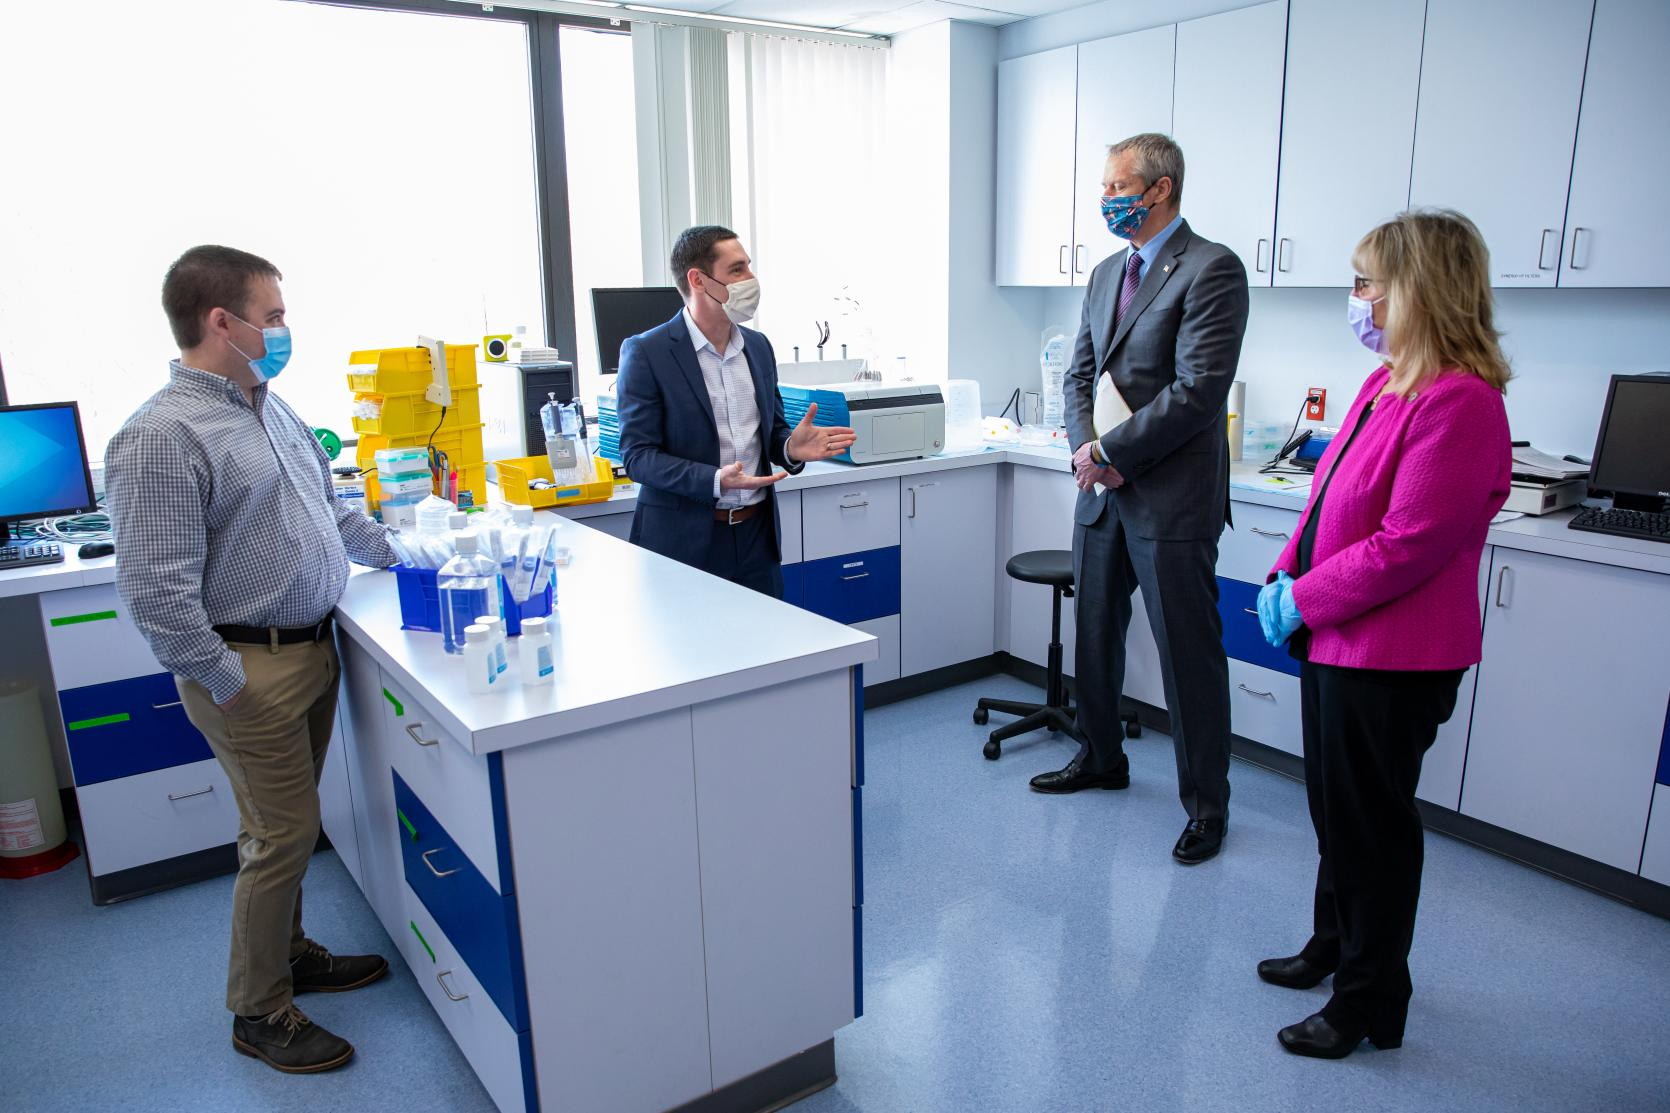 Governor Baker Tours MetroWest Manufacturer MatTek Life Sciences, Pivoting to Support COVID-19 Research With Support from M-ERT